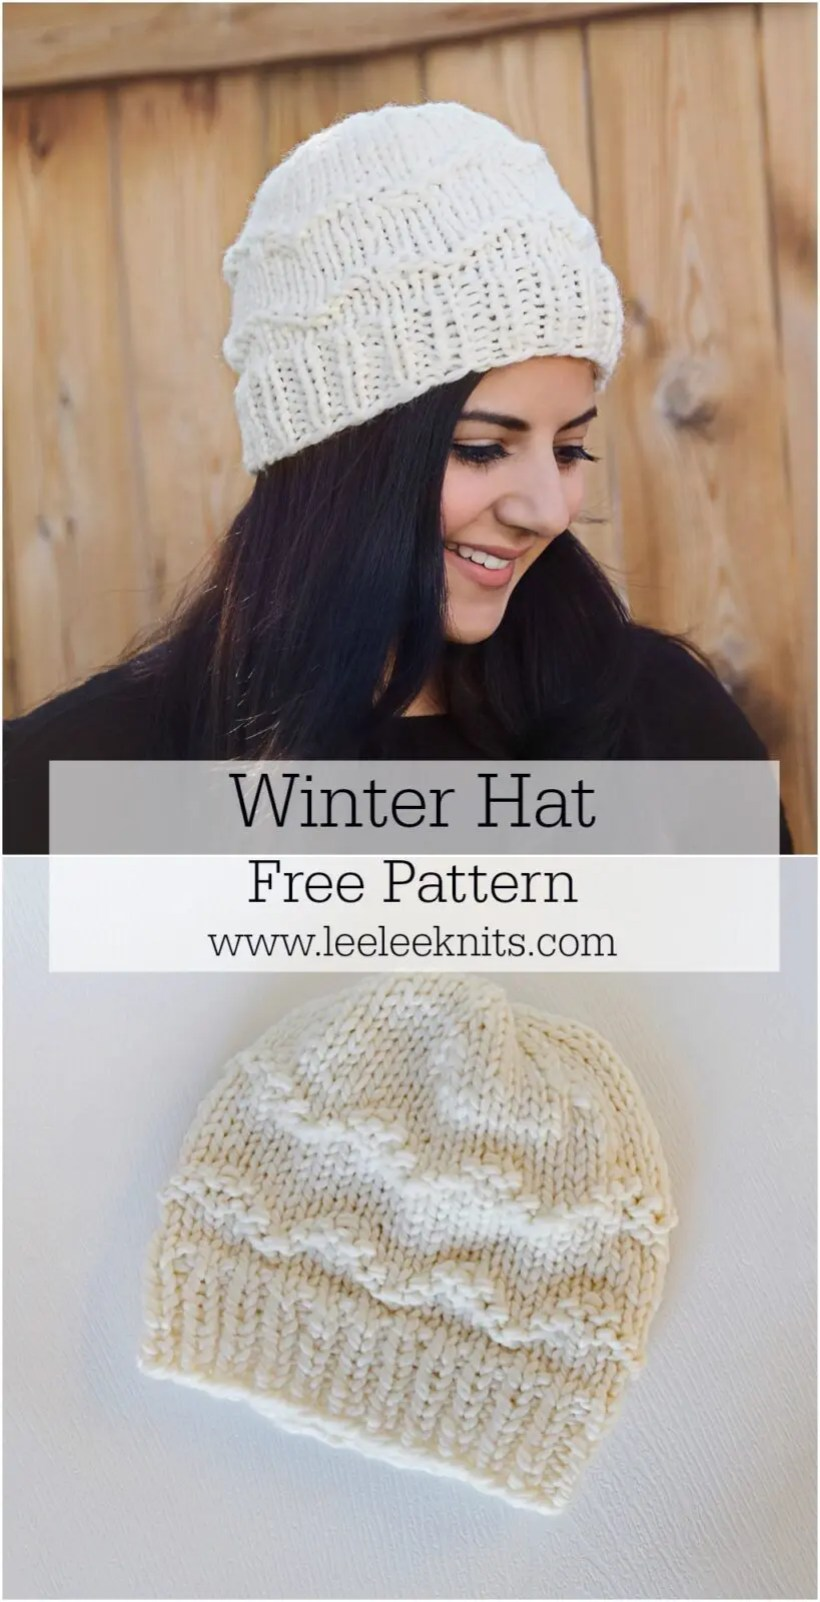 The Coziest Winter Hat Knitting Pattern - Leelee Knits